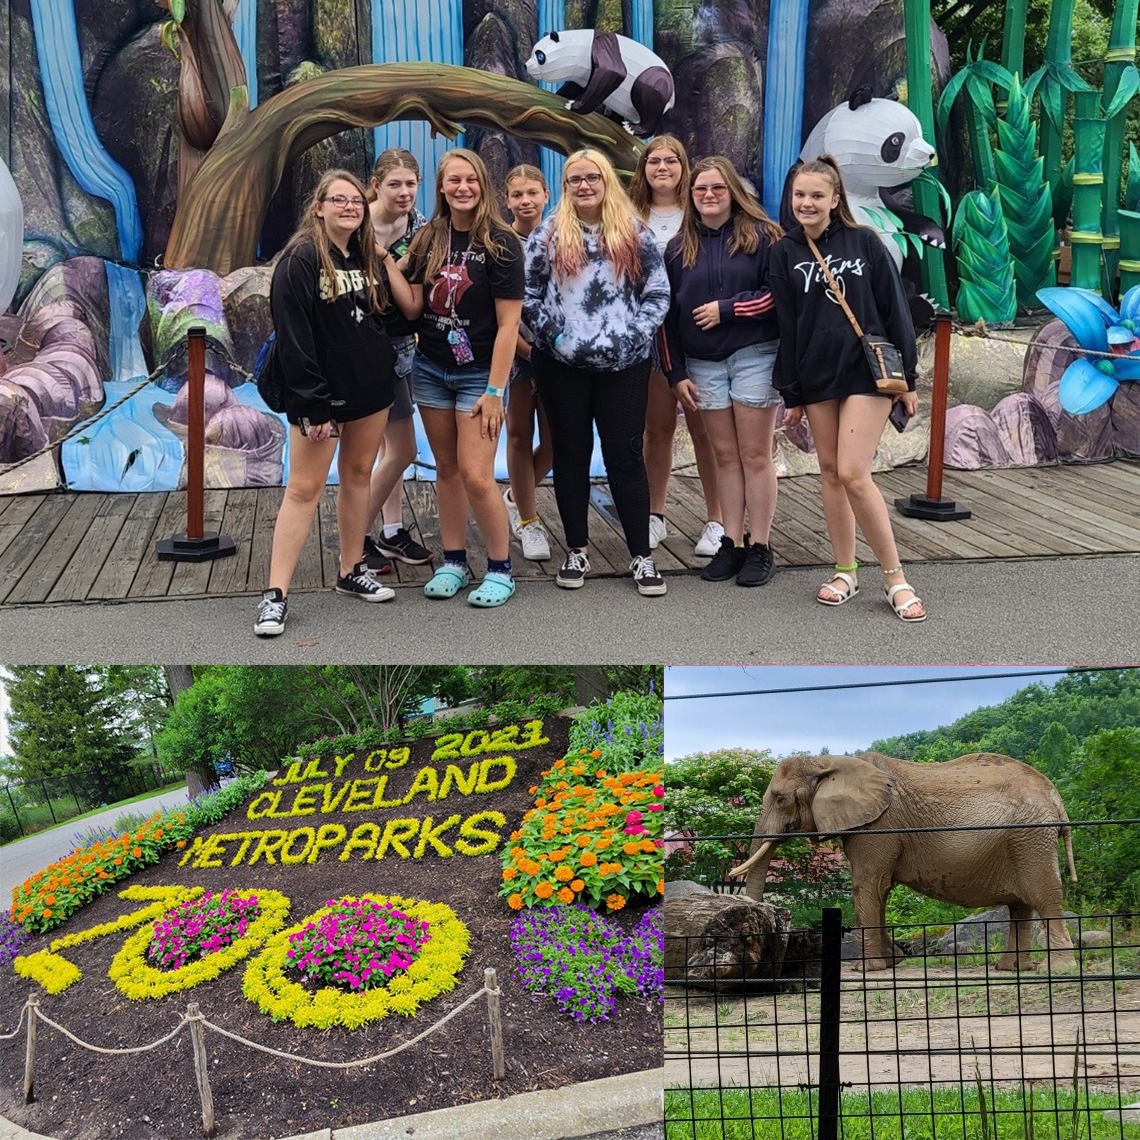 he Cleveland Zoo offers many sights for the students to enjoy